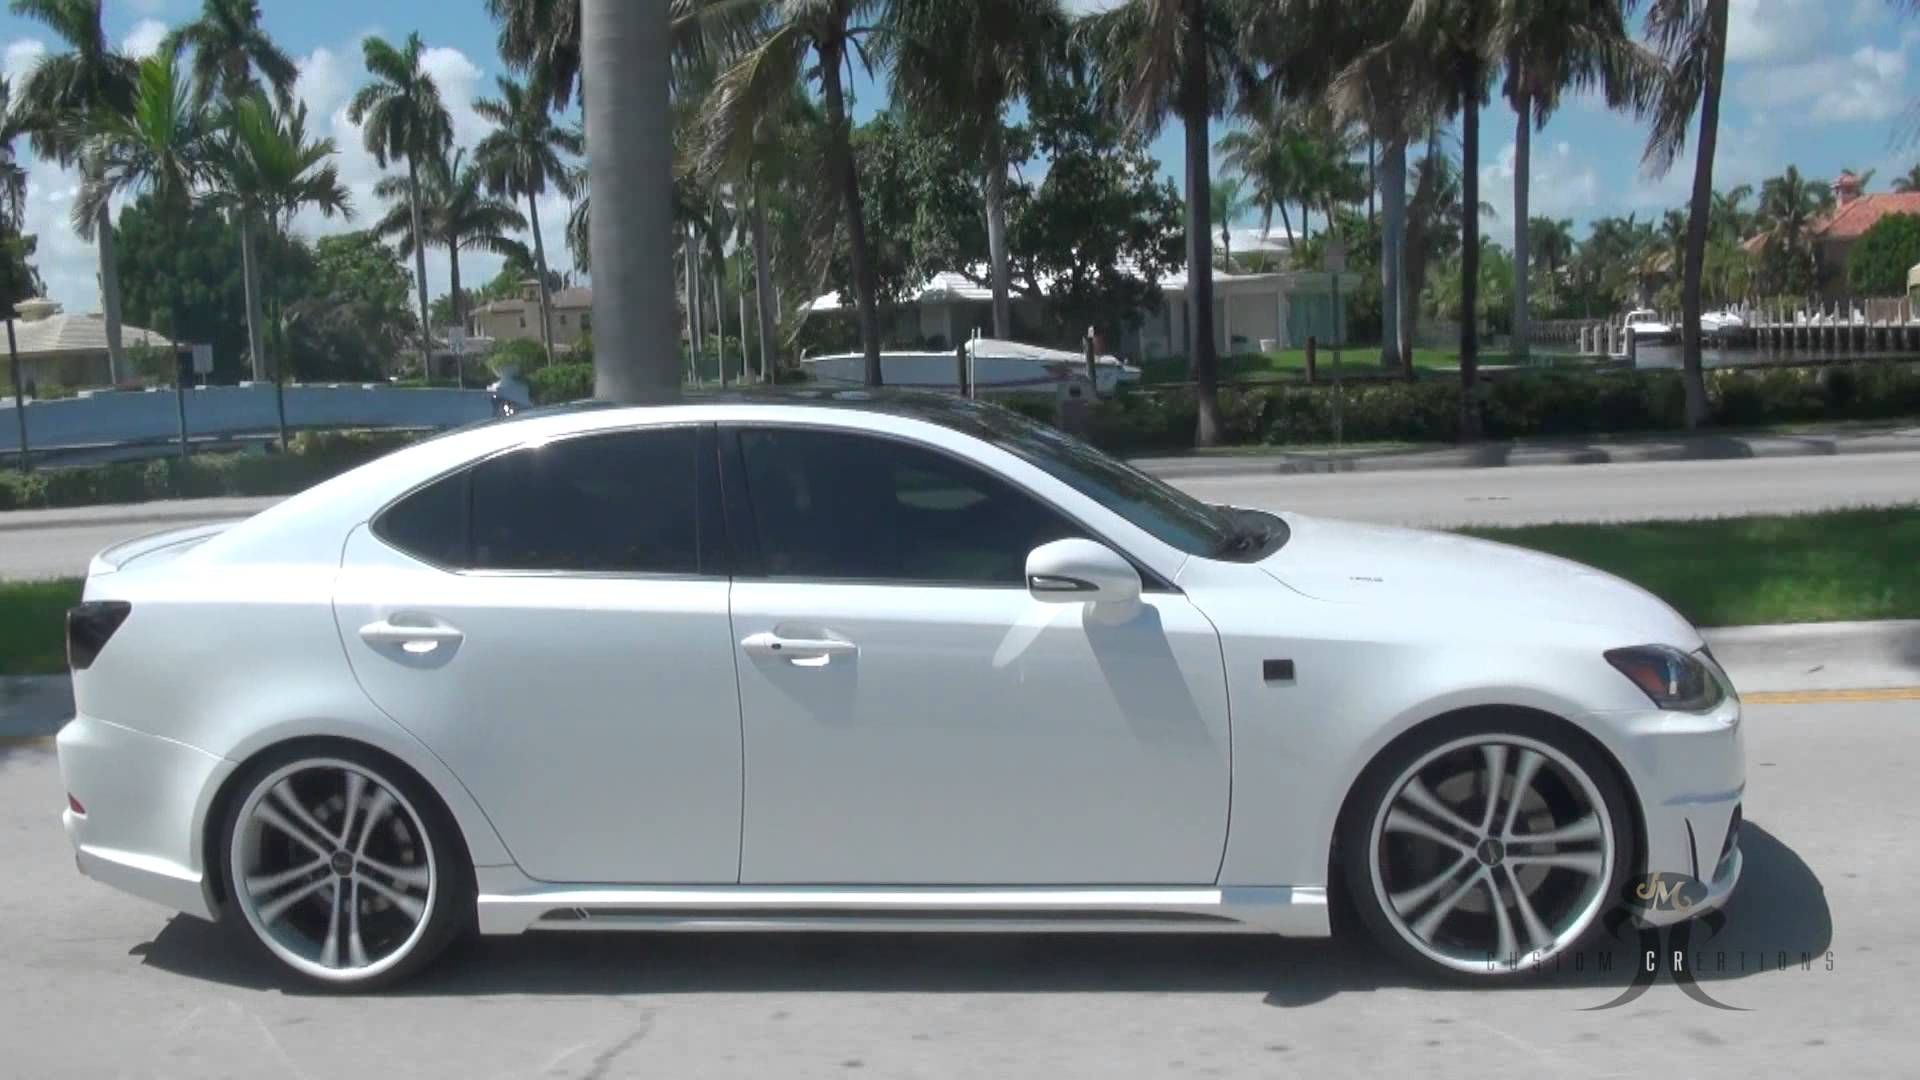 Jm custom creations project car the lexus is 350 f sport around south florida